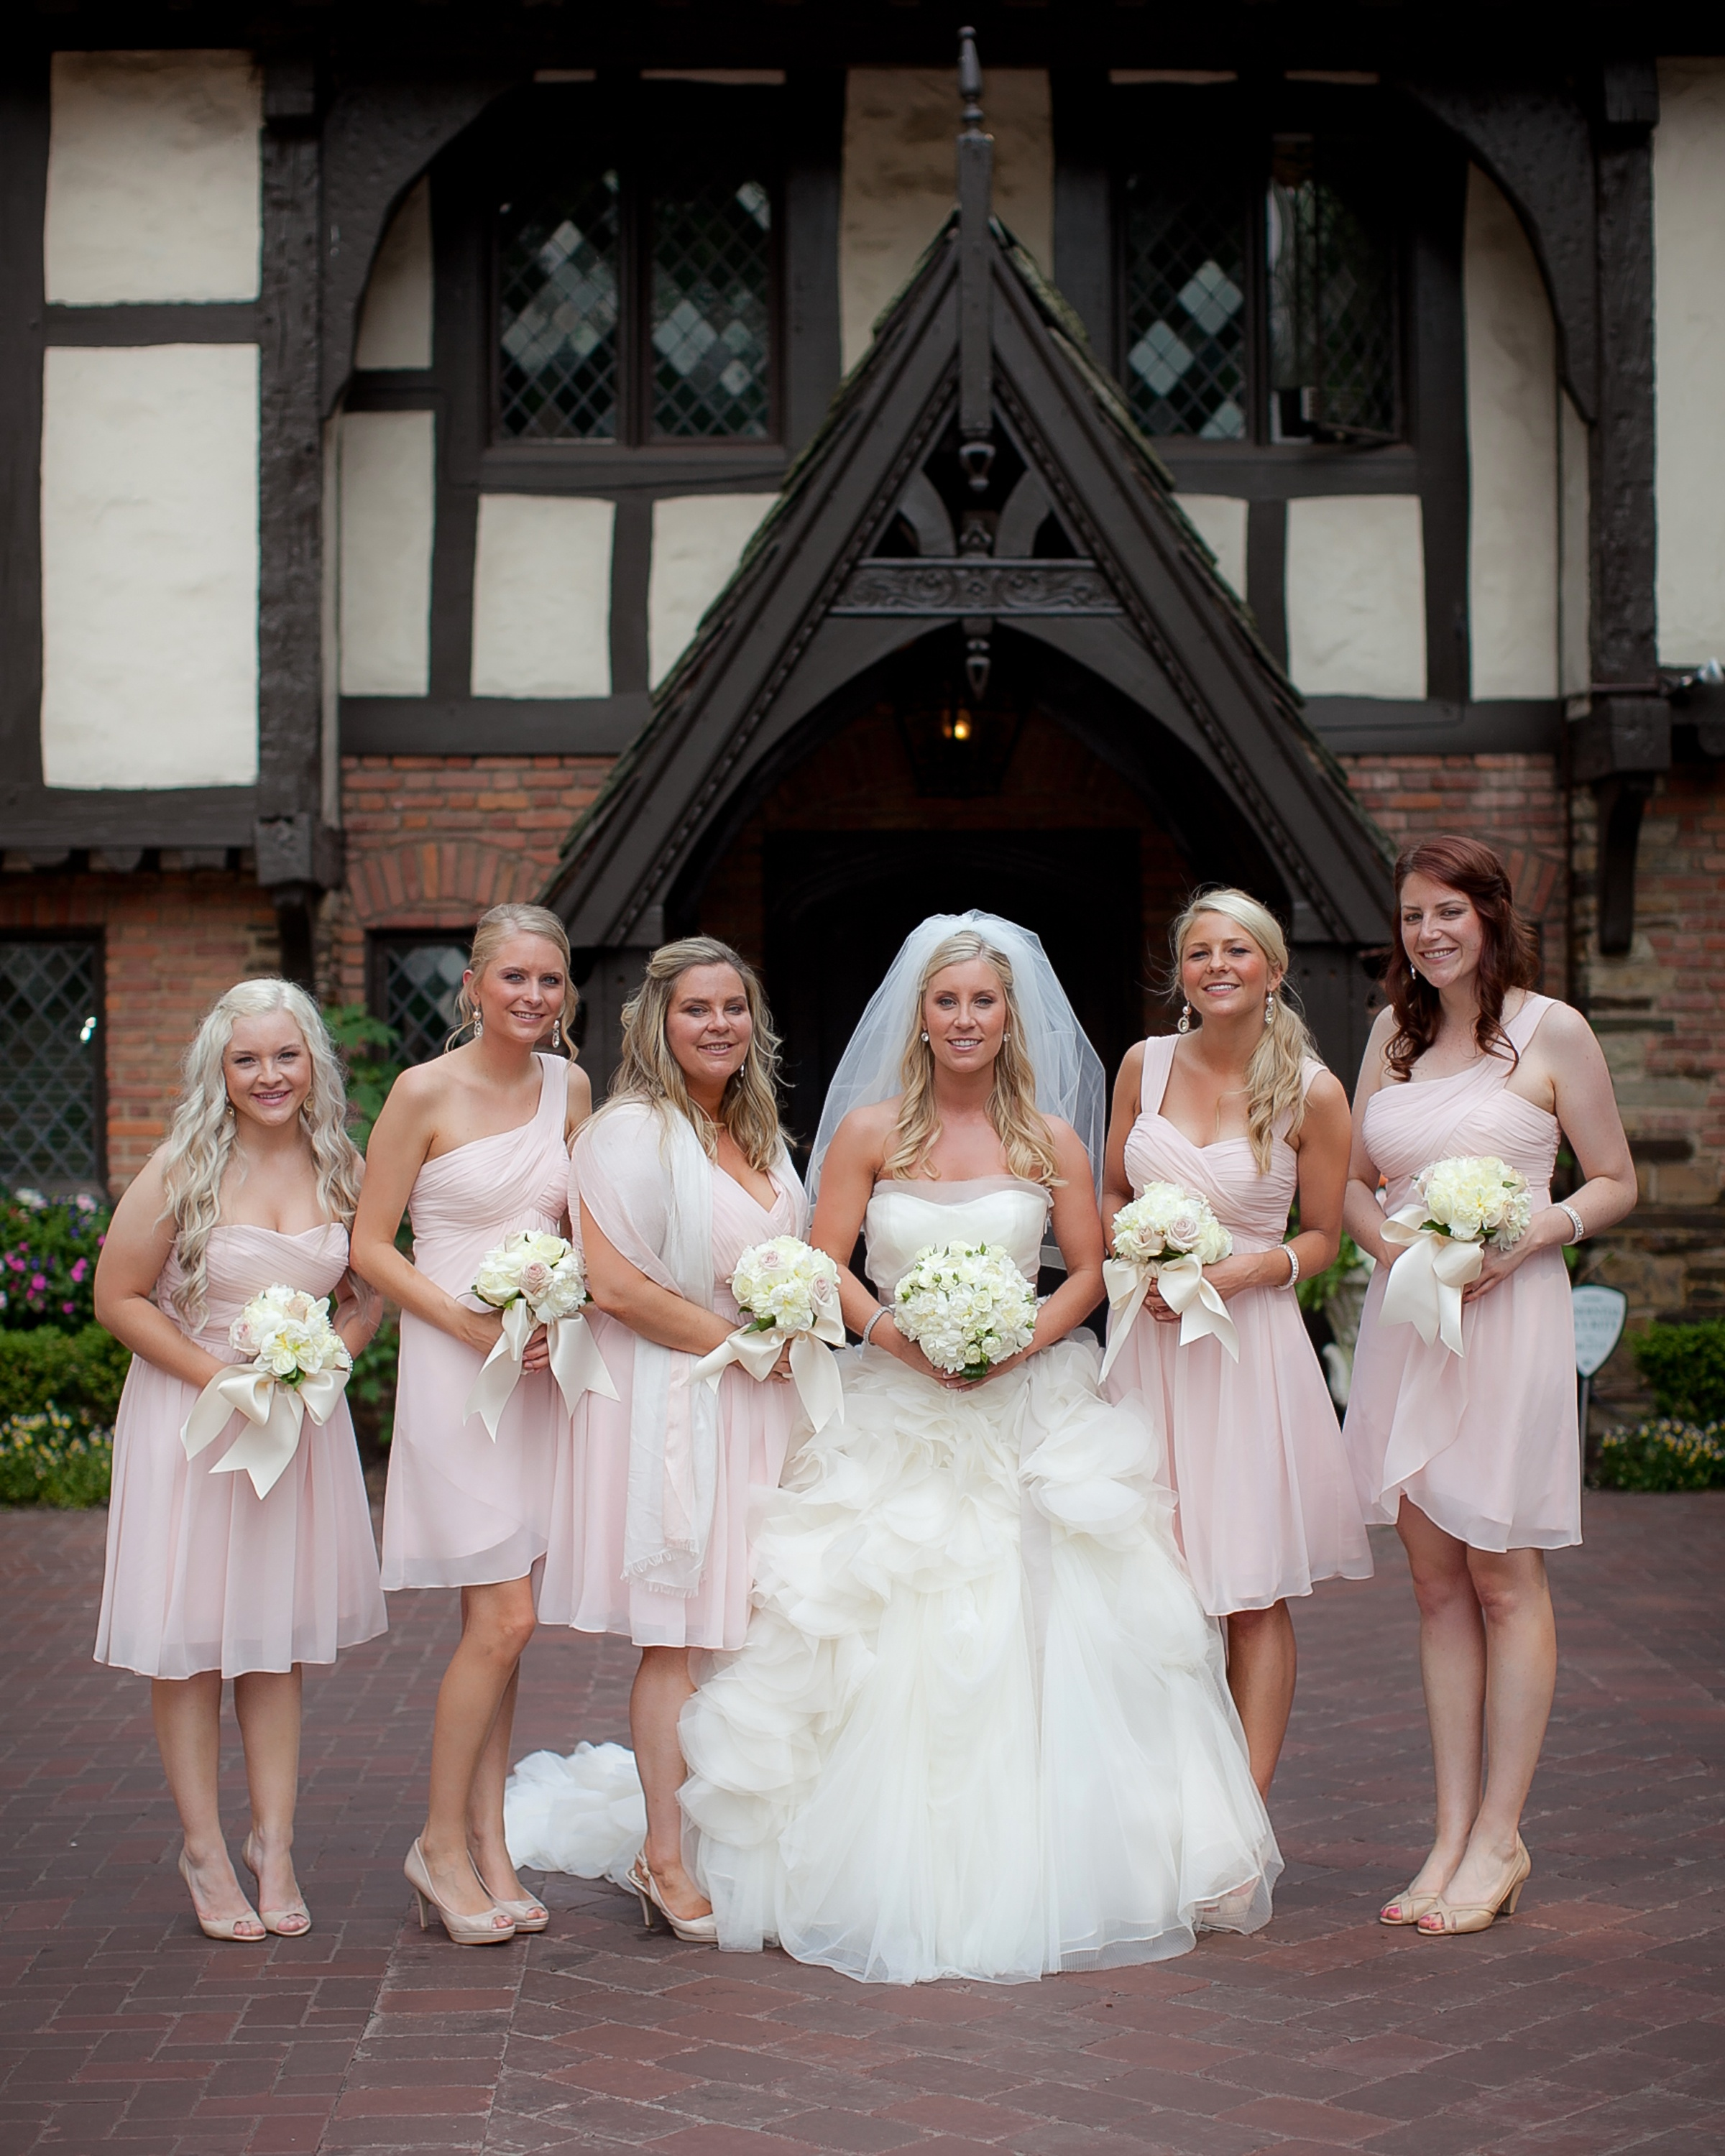 The elegant bridal party wore mixed petal pink Bill Levkoff dresses from Brides by Demetrios.